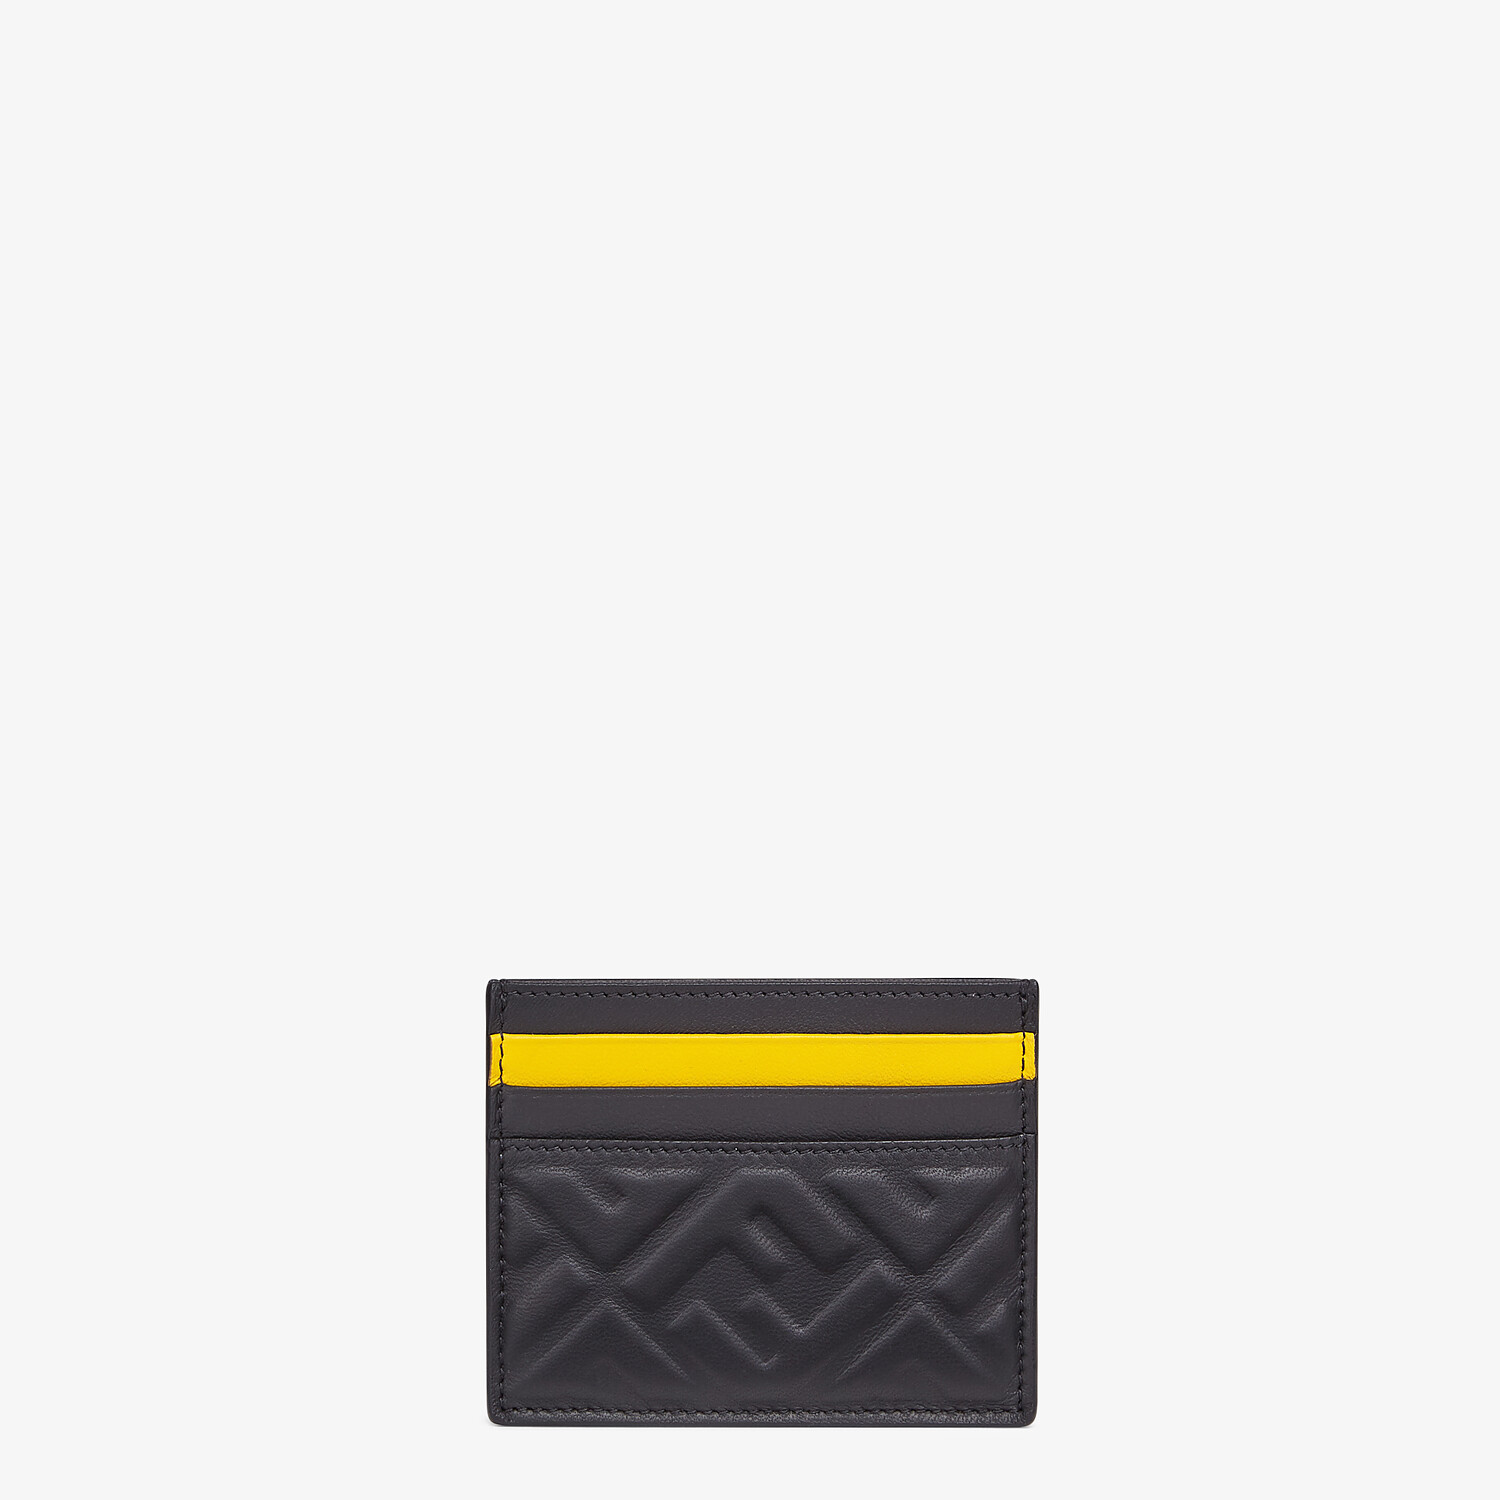 FENDI CARD HOLDER - Black nappa leather card holder - view 1 detail